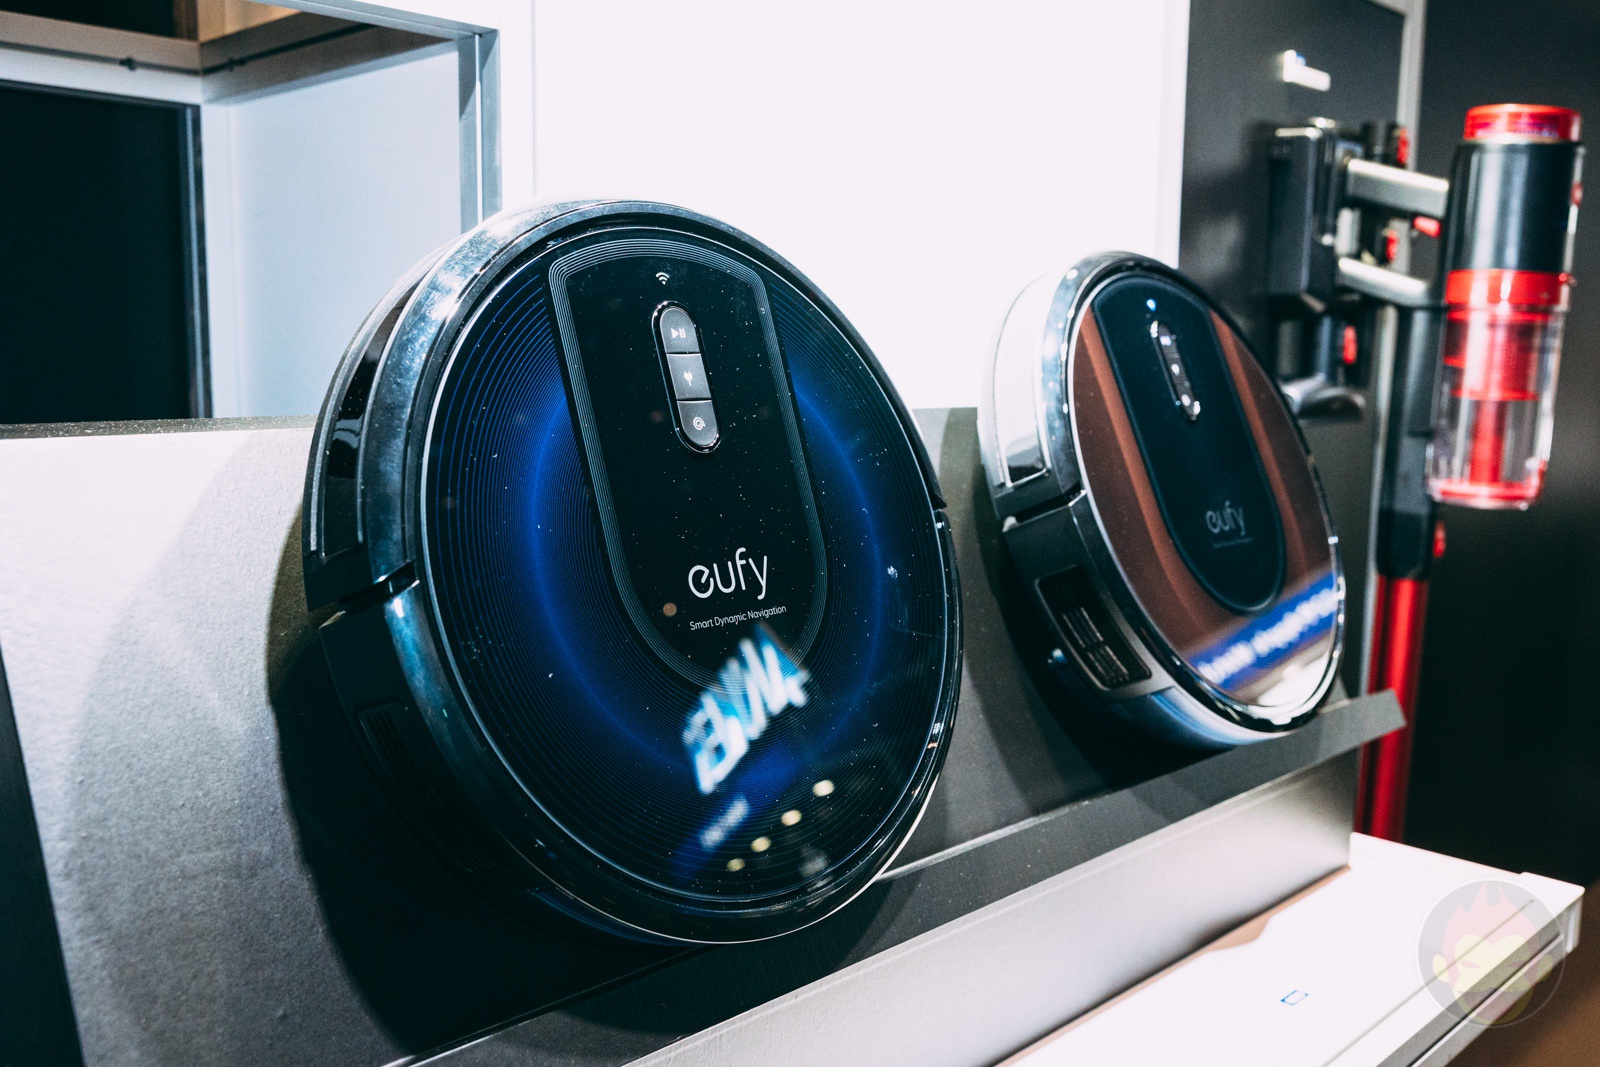 Anker New Eufy Cleaning products hands on 03